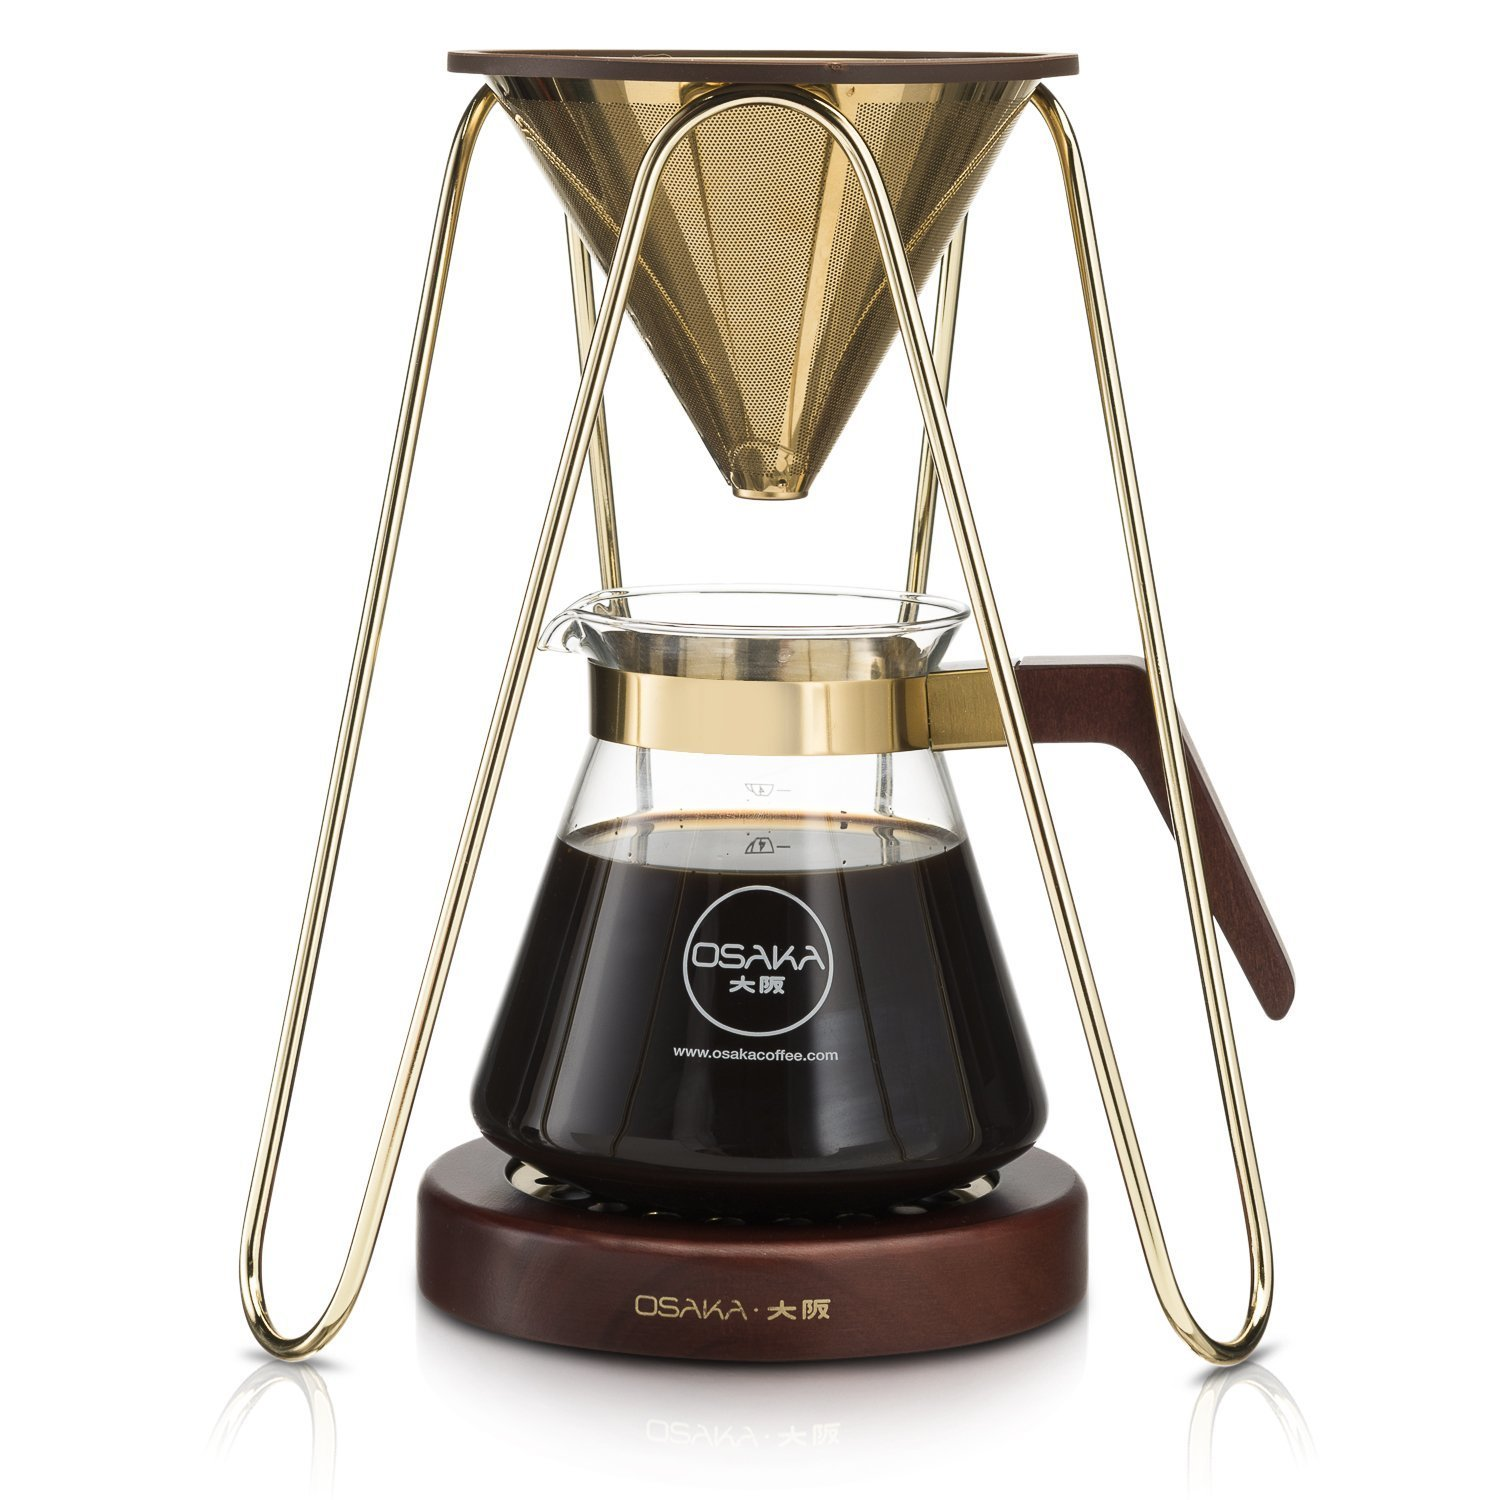 Osaka Tripod Pour-Over Coffee Maker Station with Gold Filter - Full Brewing Station for Pourover Coffee - 20oz. Capacity. ''Kaiyukan-Gold'' by Osaka